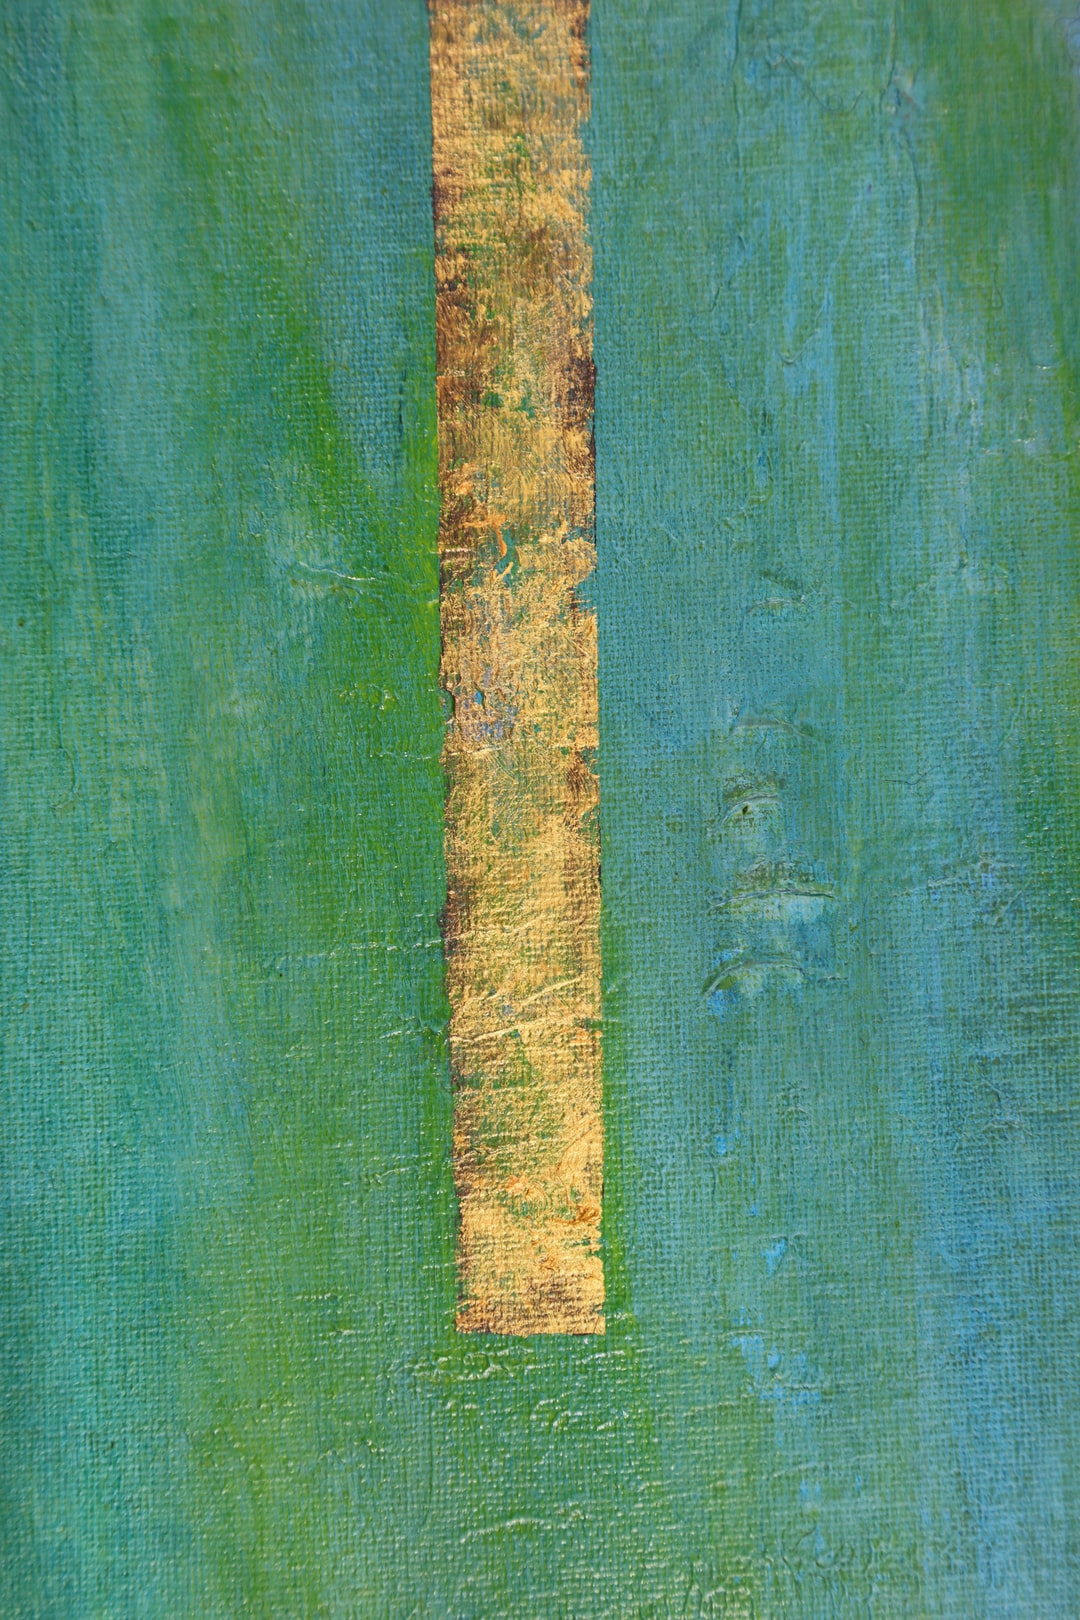 Close-up of one of my paintings. See the full collection at www.sensoryarthouse.com. For licensing, contact us at sales@sensoryarthouse.com or instagram @sensoryarthouse